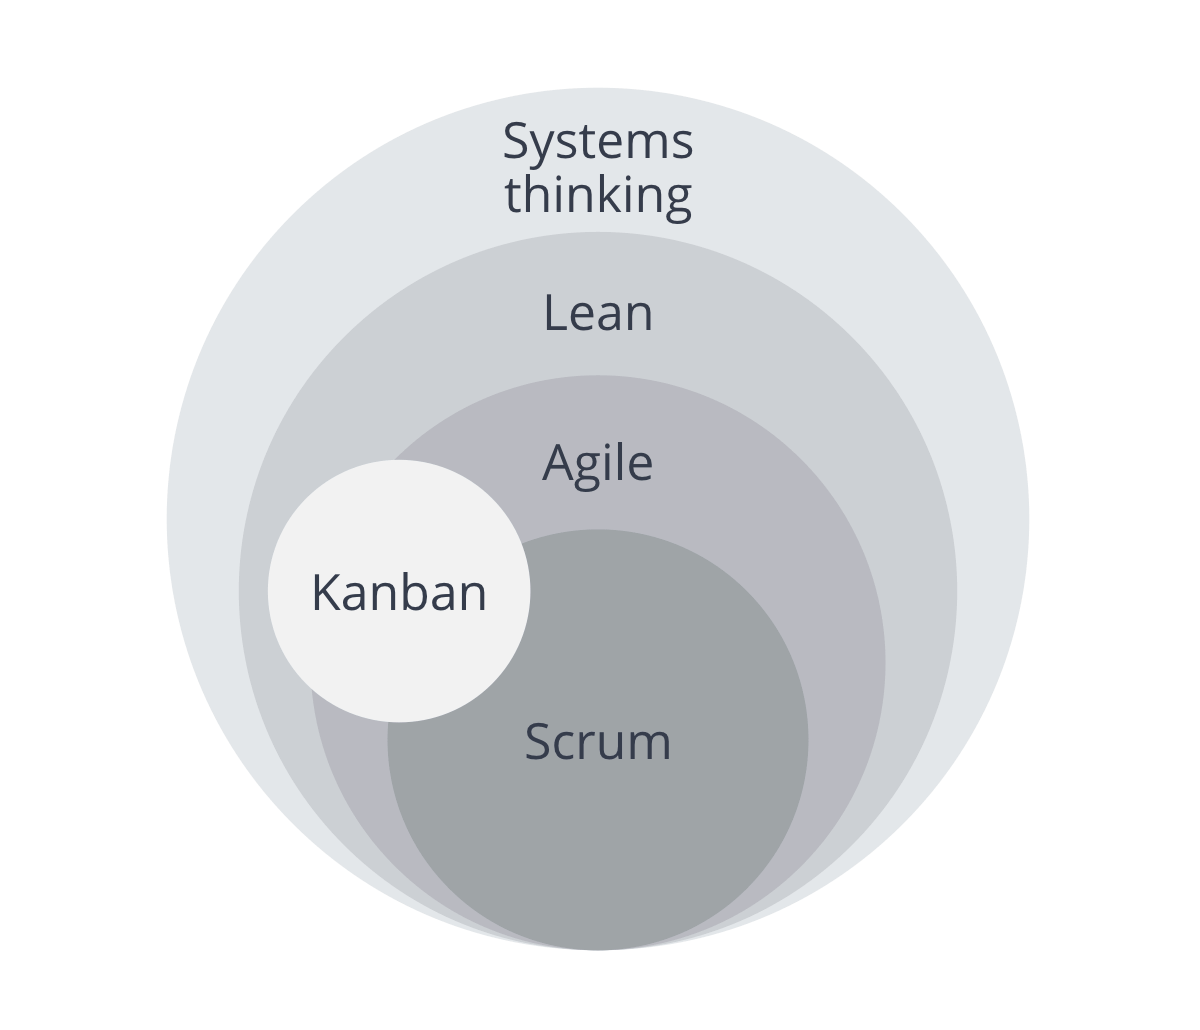 these methodologies and philosophies are connected with each other and are the parts of Systems thinking